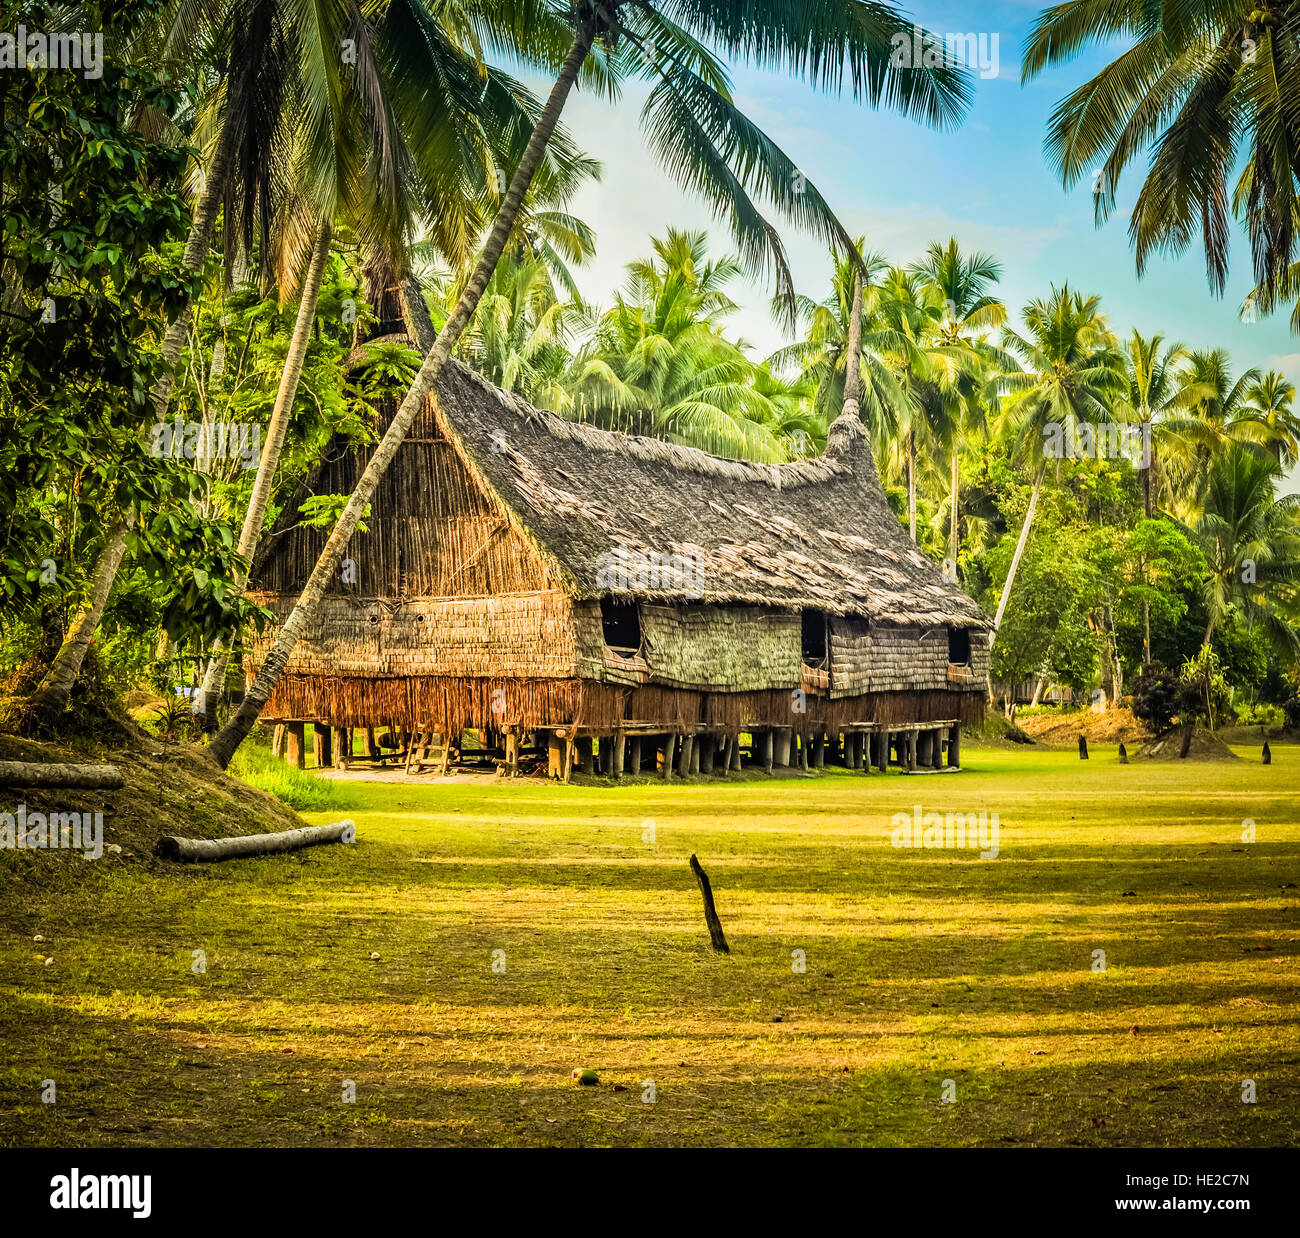 Large House Made Of Straw And Wood Surrounded By Greenery In Palembe, Sepik  River In Papua New Guinea. In This Region, One Can Only Meet People From I